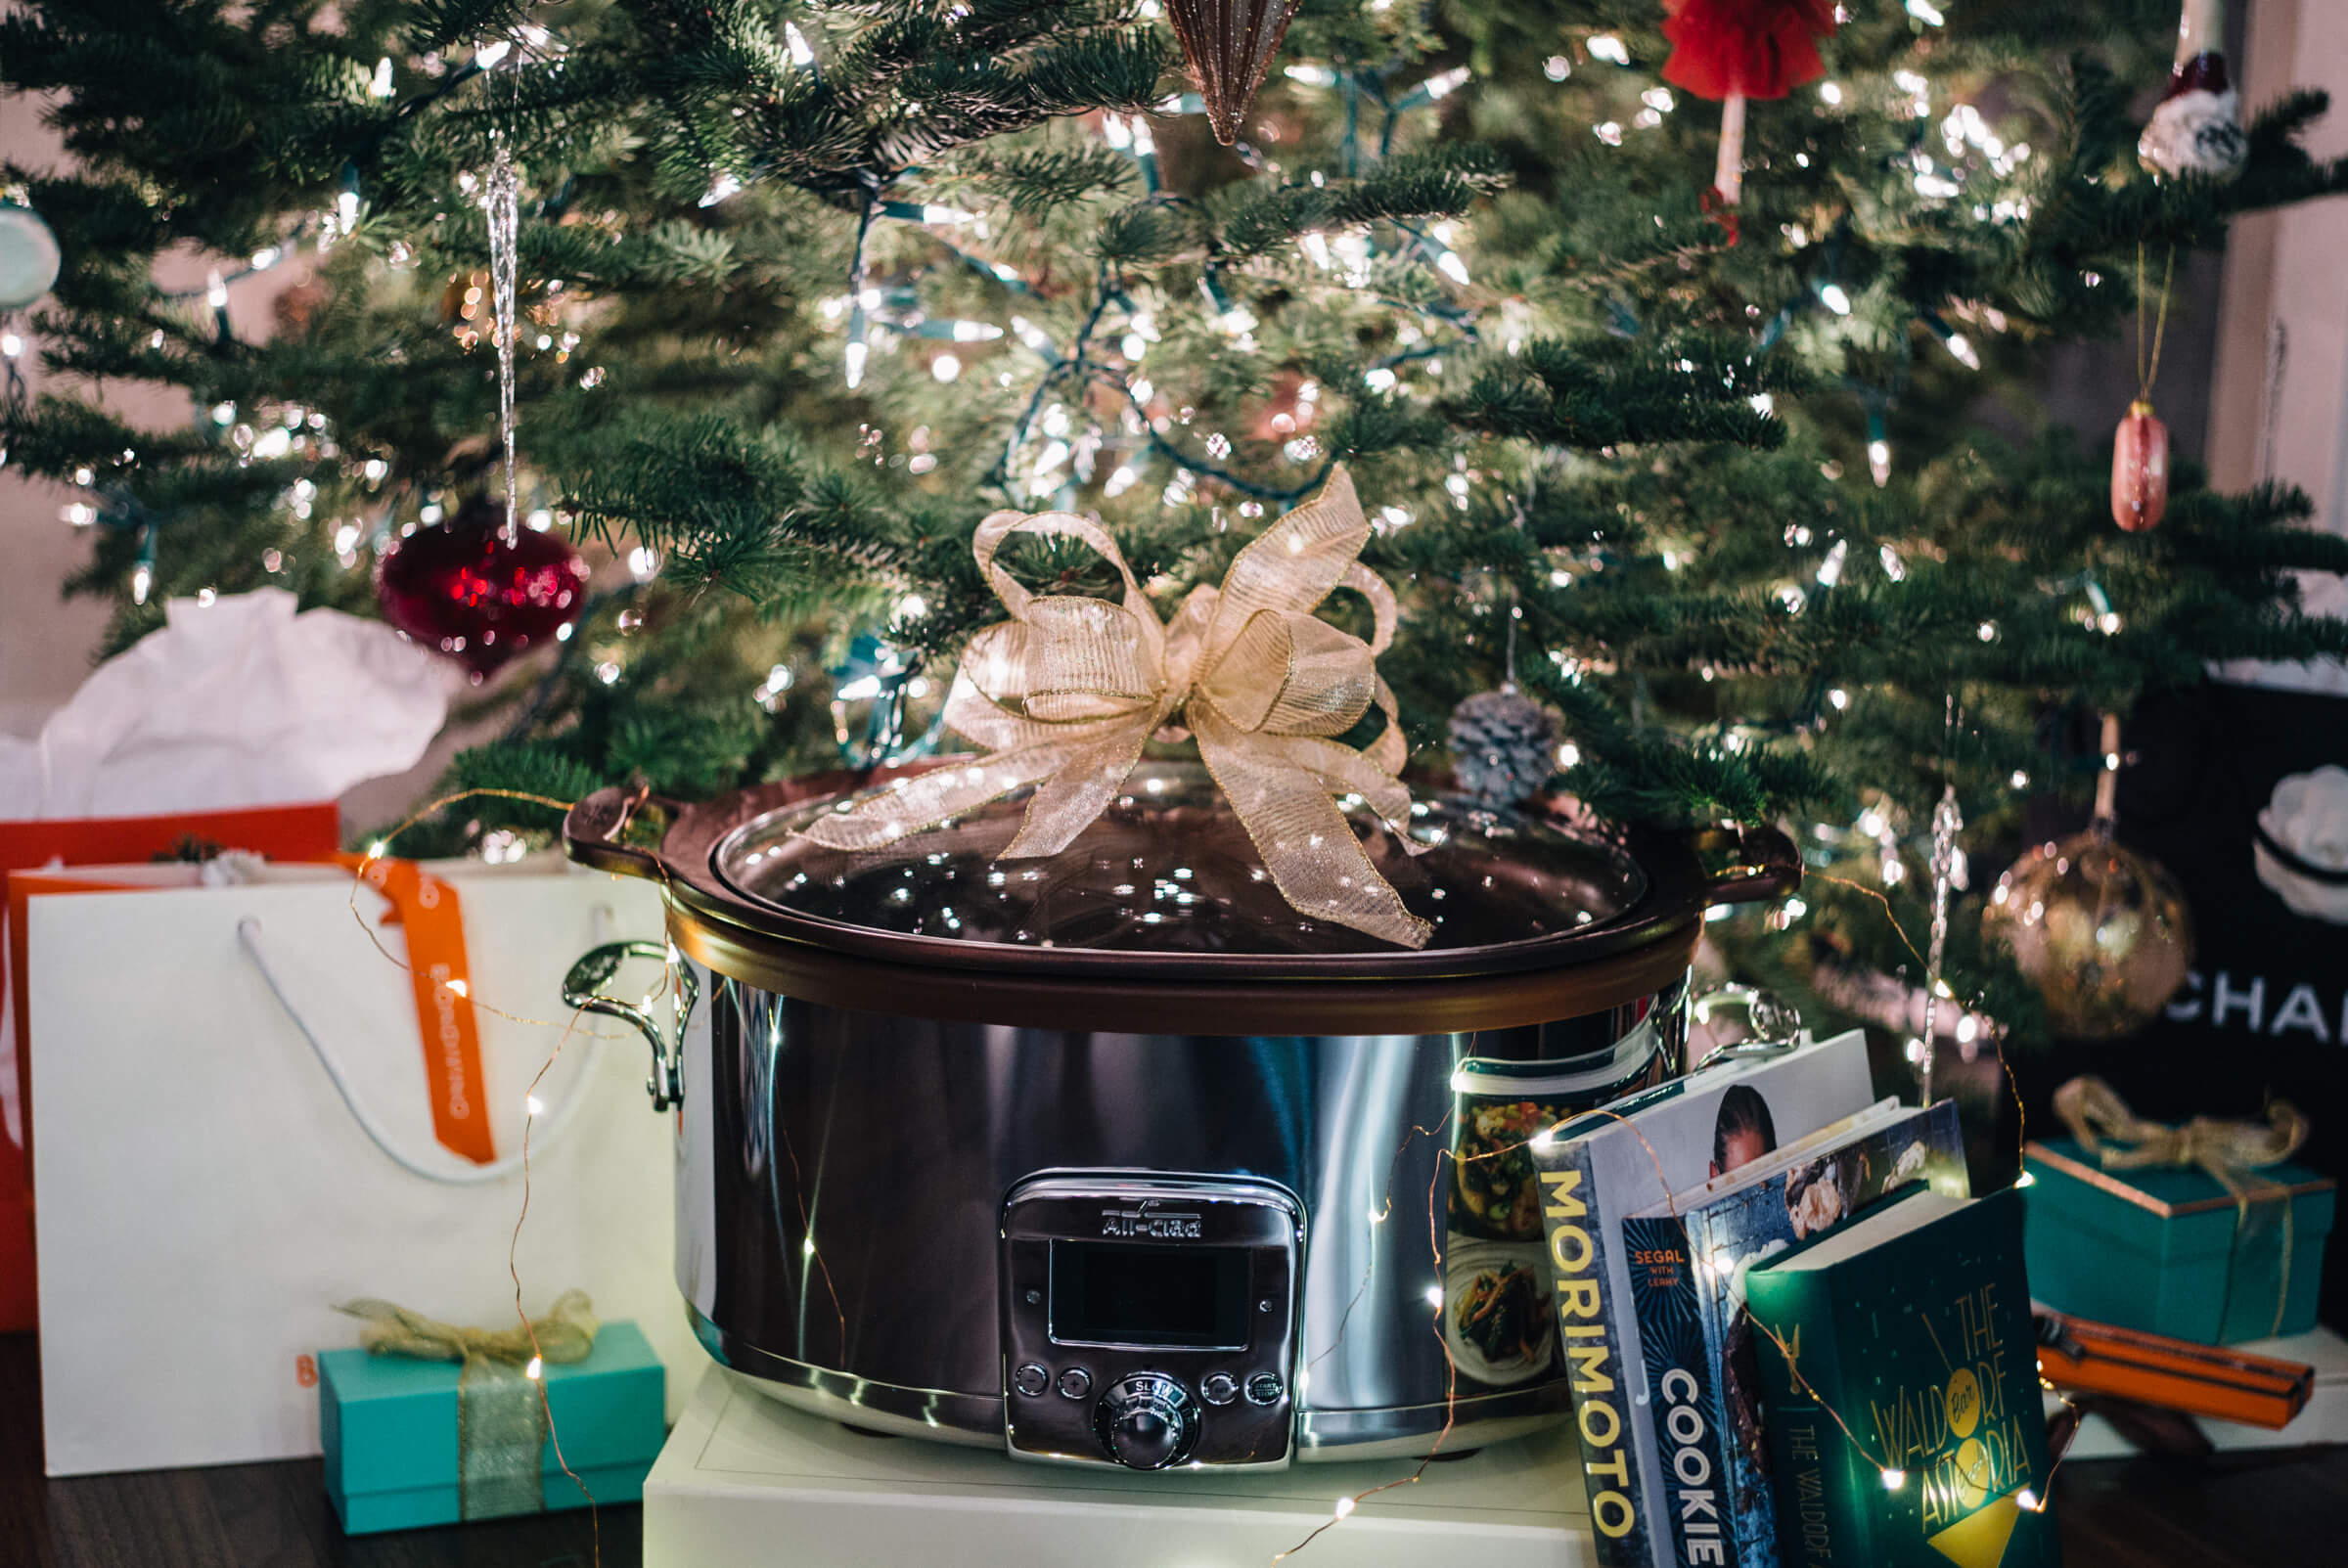 All-clad gourment slowcooker giveaway with the taste sf